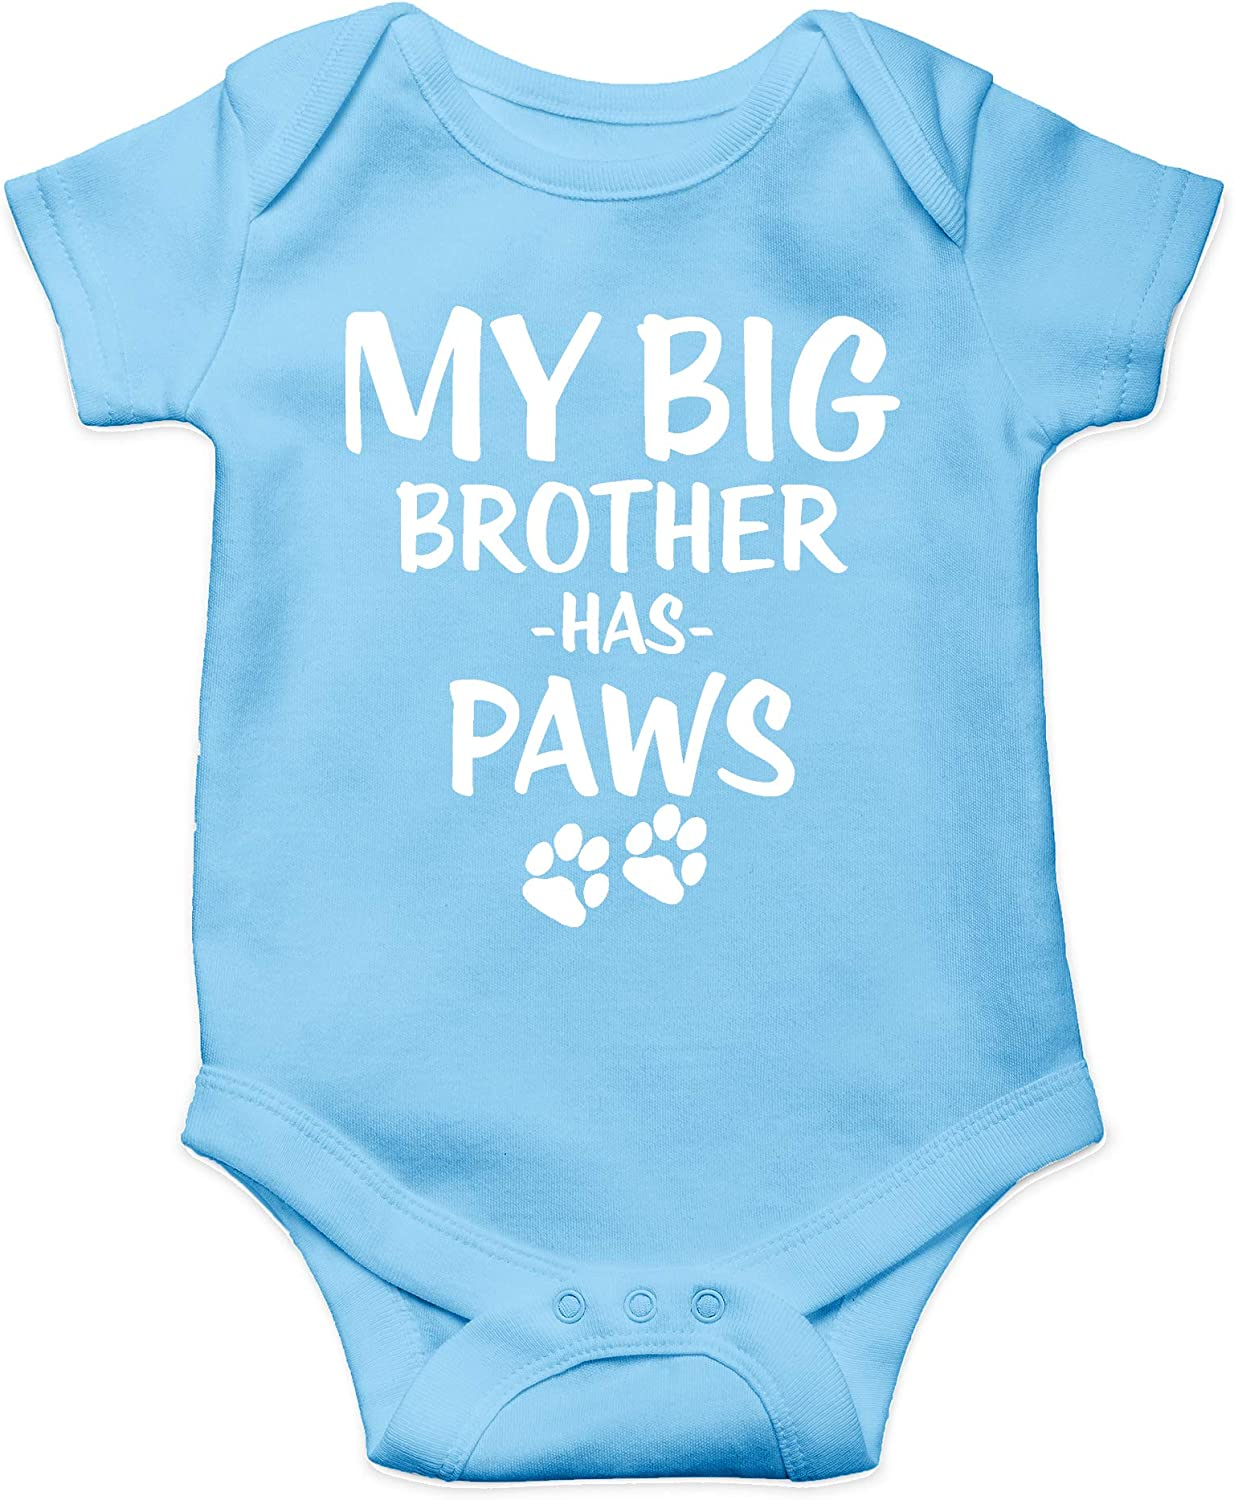 Baby/'s with cats dogs animals Custom name My big brother has paws light blue long sleeve baby grow rompersuit sleepsuit bodysuit